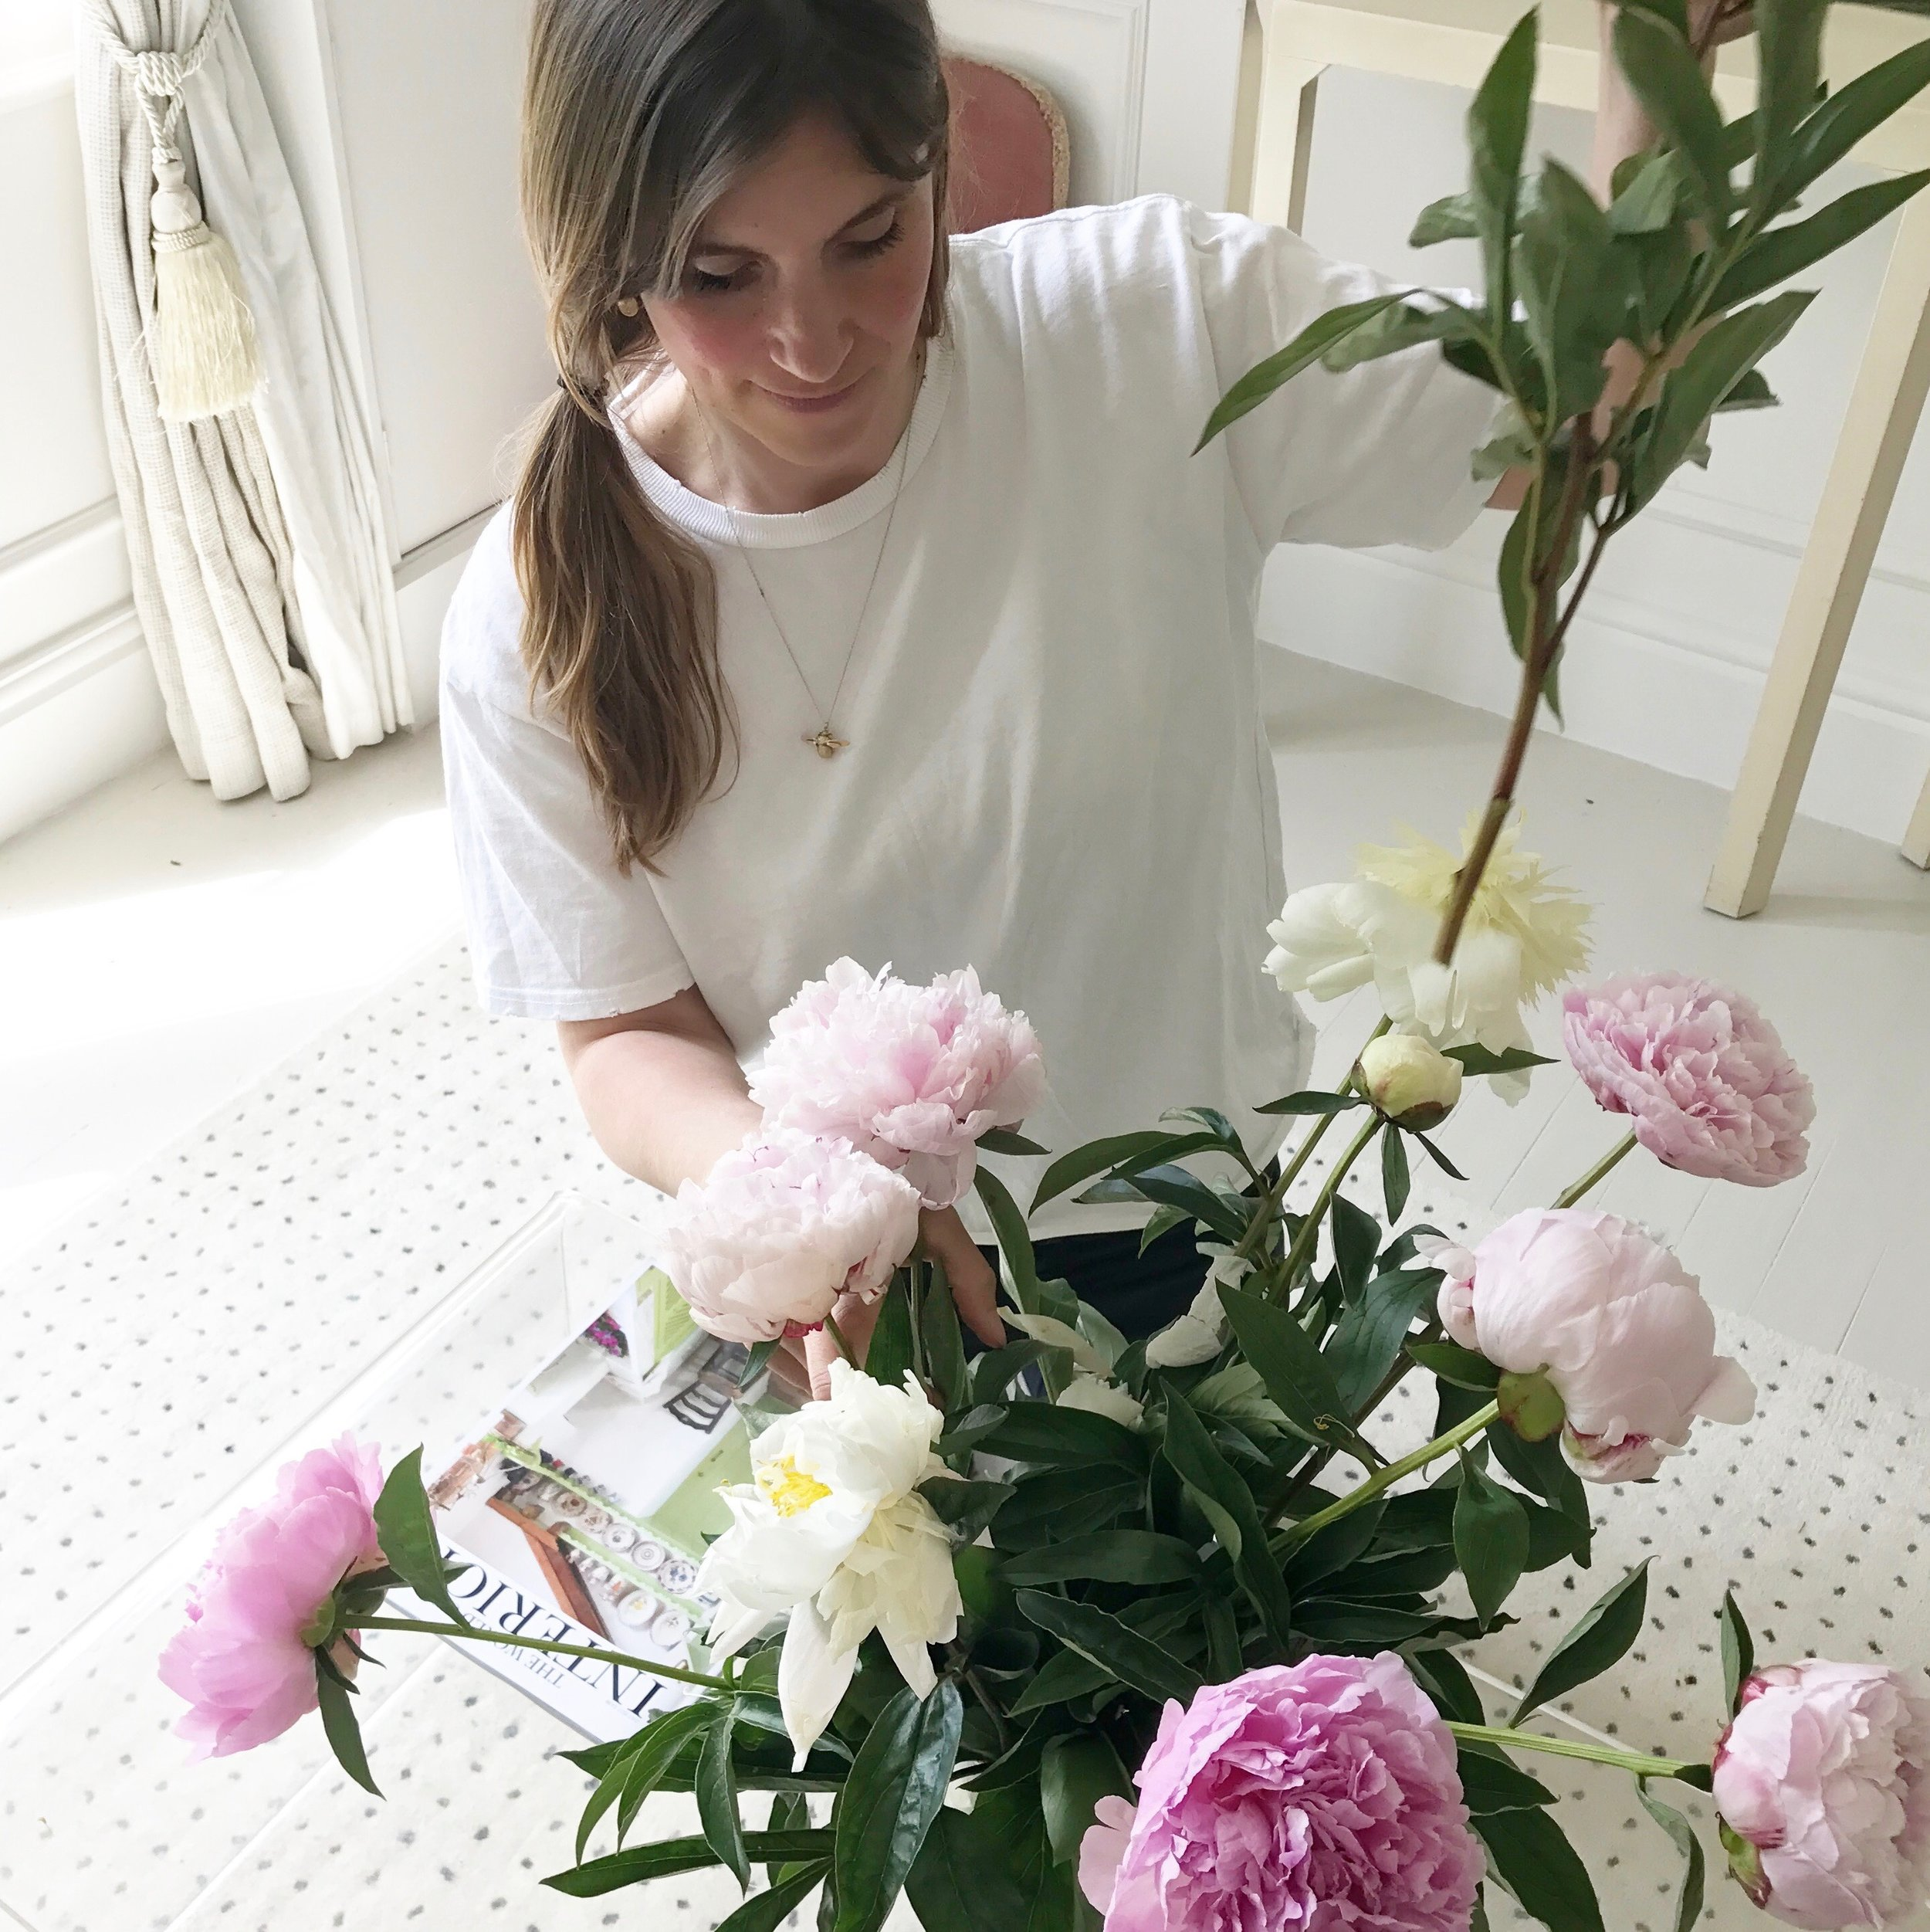 Where do you buy flowers for your home? At home with Camilla Pearl Blog and Freddie's Flowers.